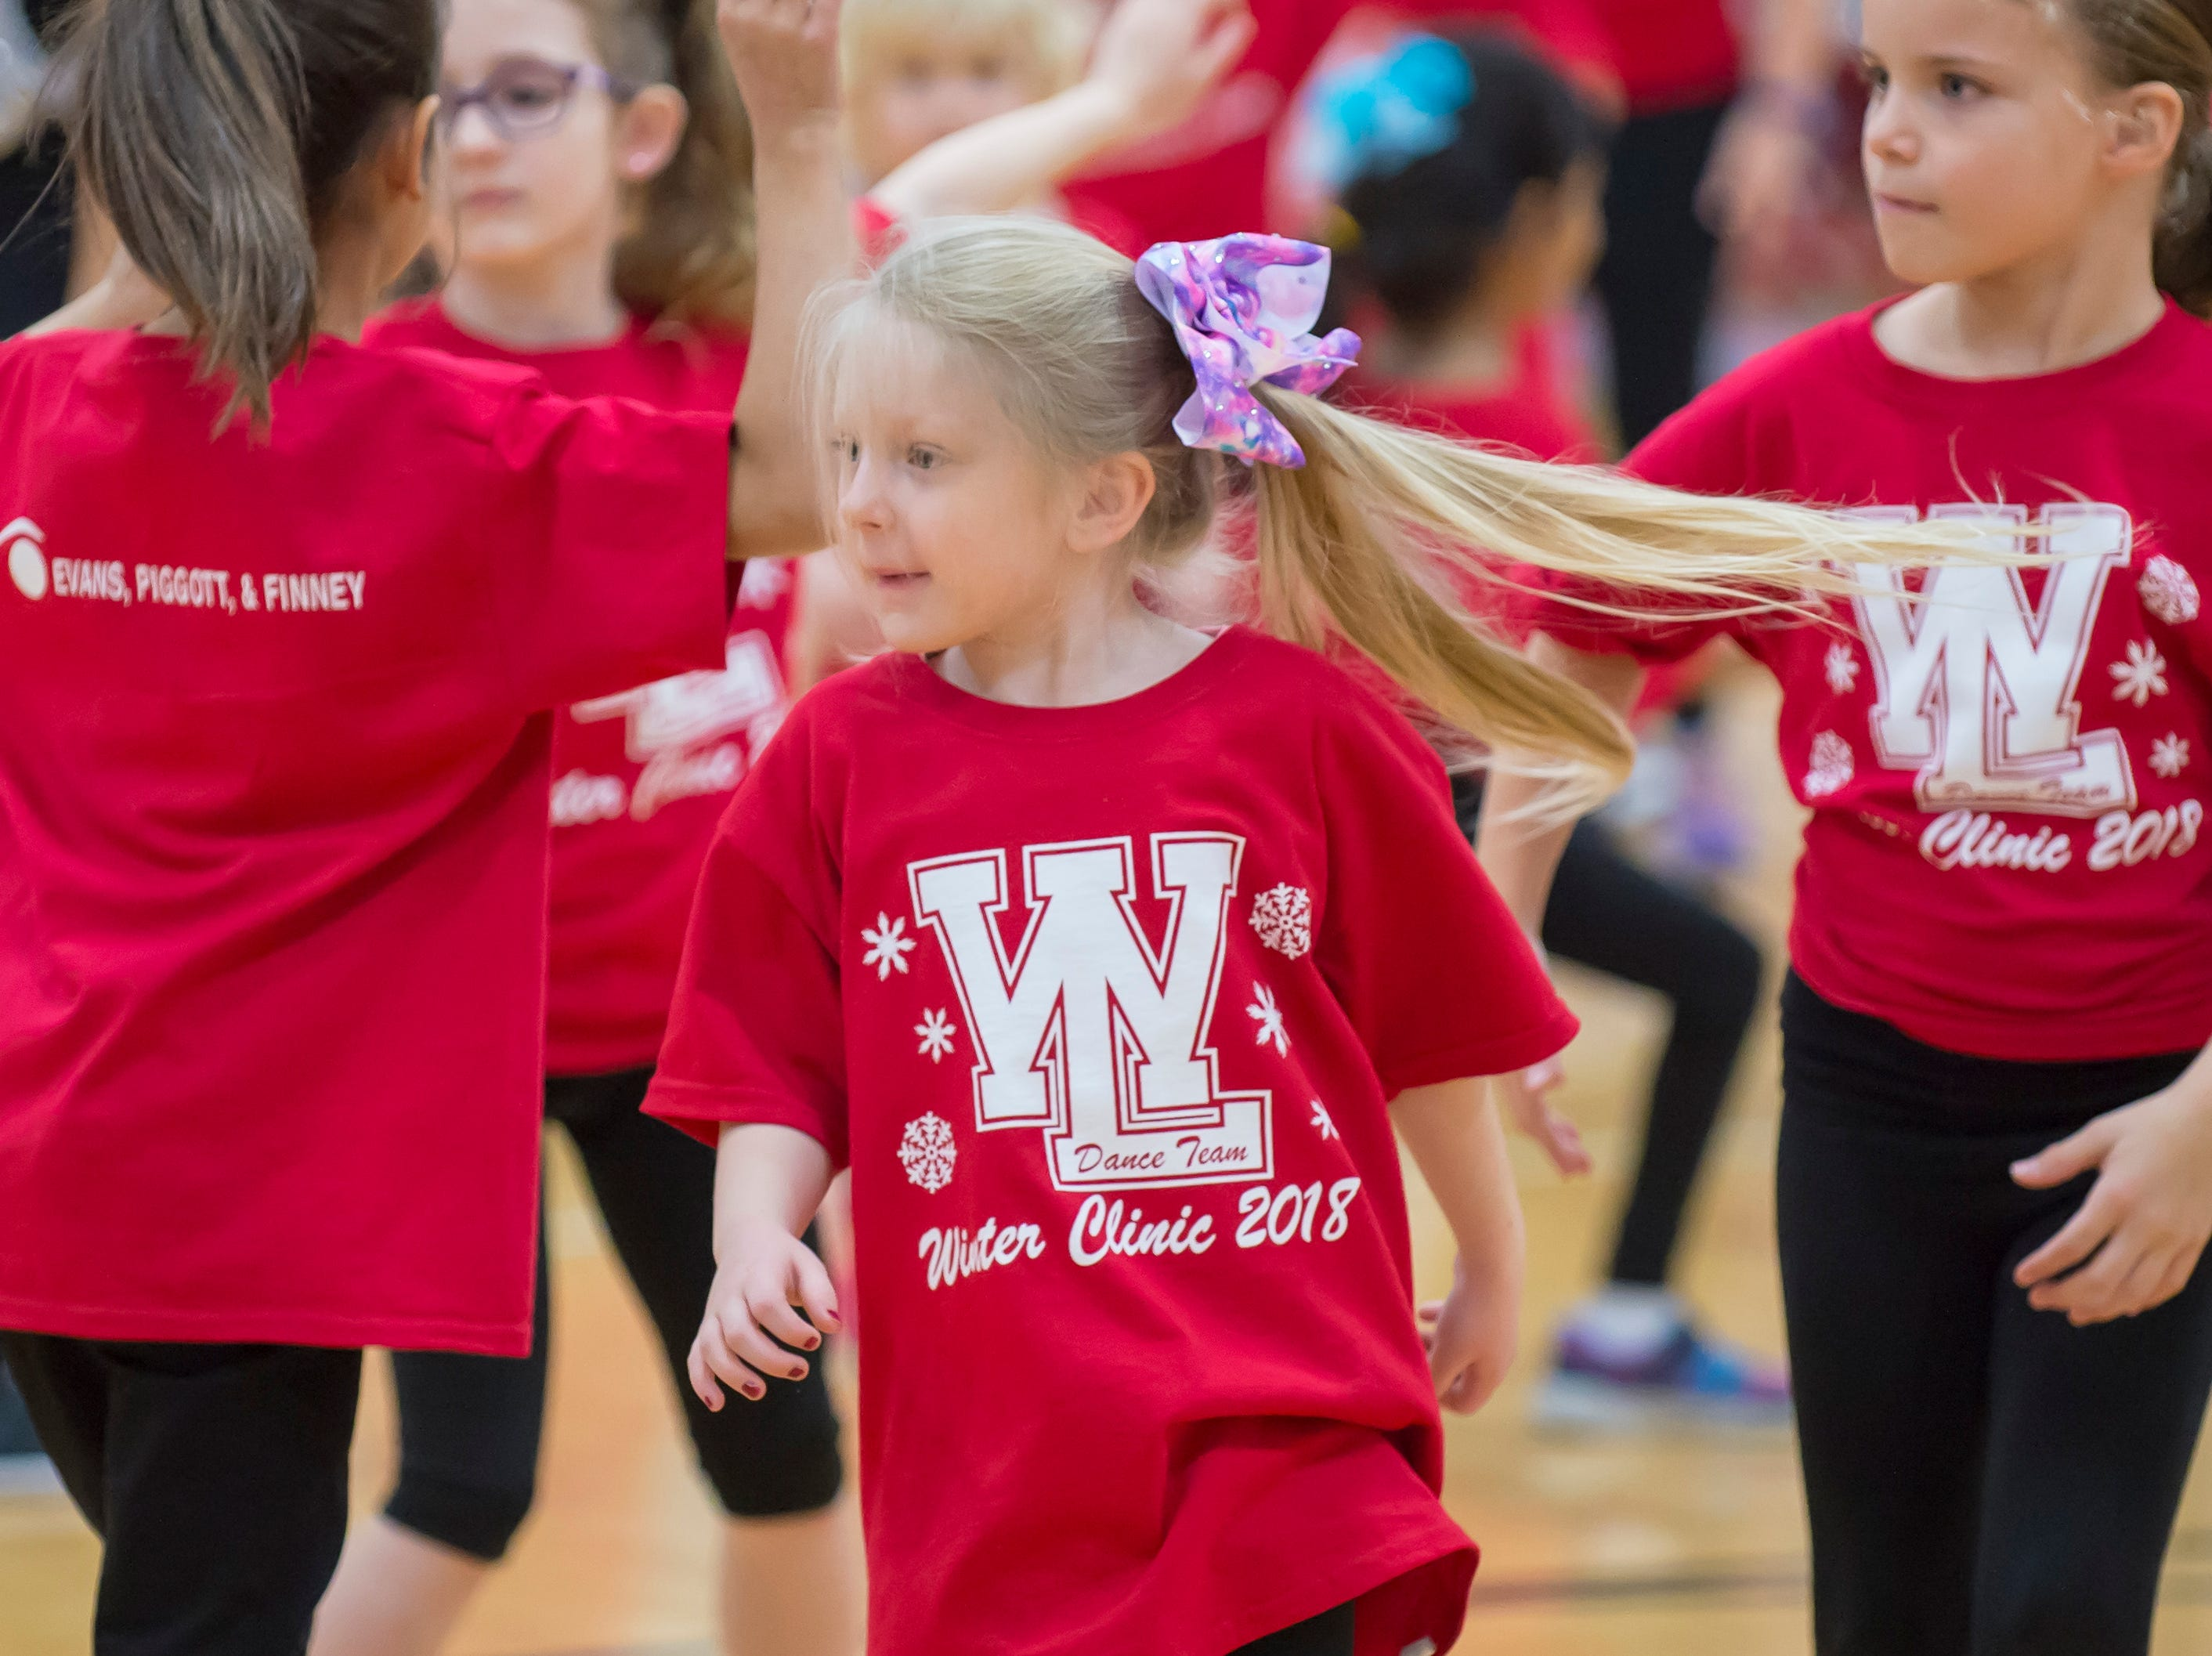 Halftime performance featured the Winer Dance Team Clinic at the Benton Central at West Lafayette basketball game on December 14, 2018